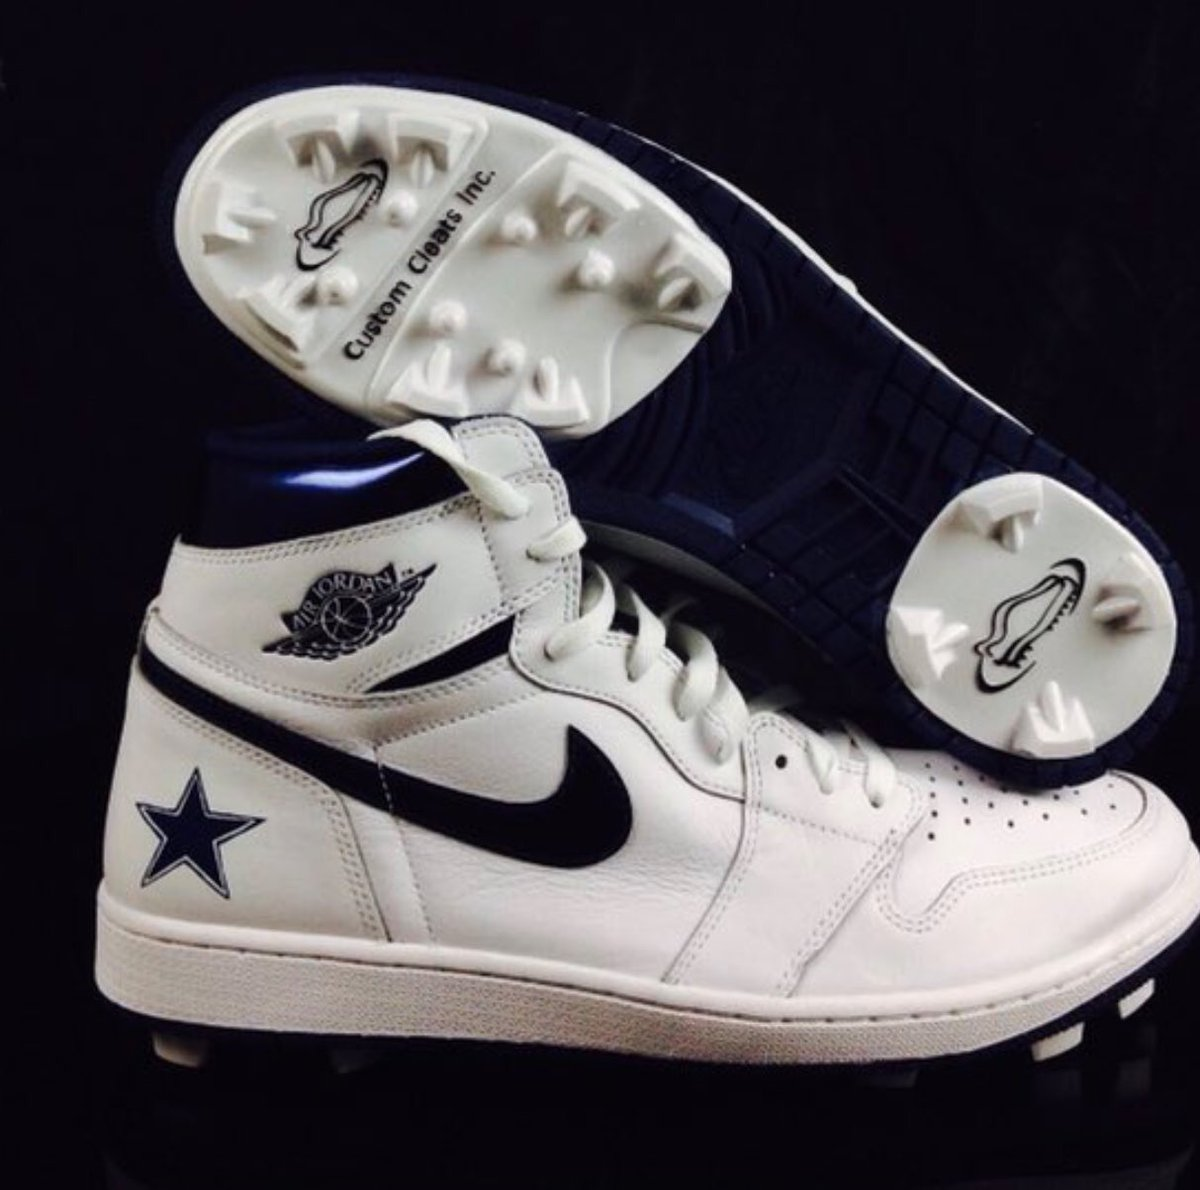 Air Jordan Dez Bryant Custom Air Jordan Cleats Athlete